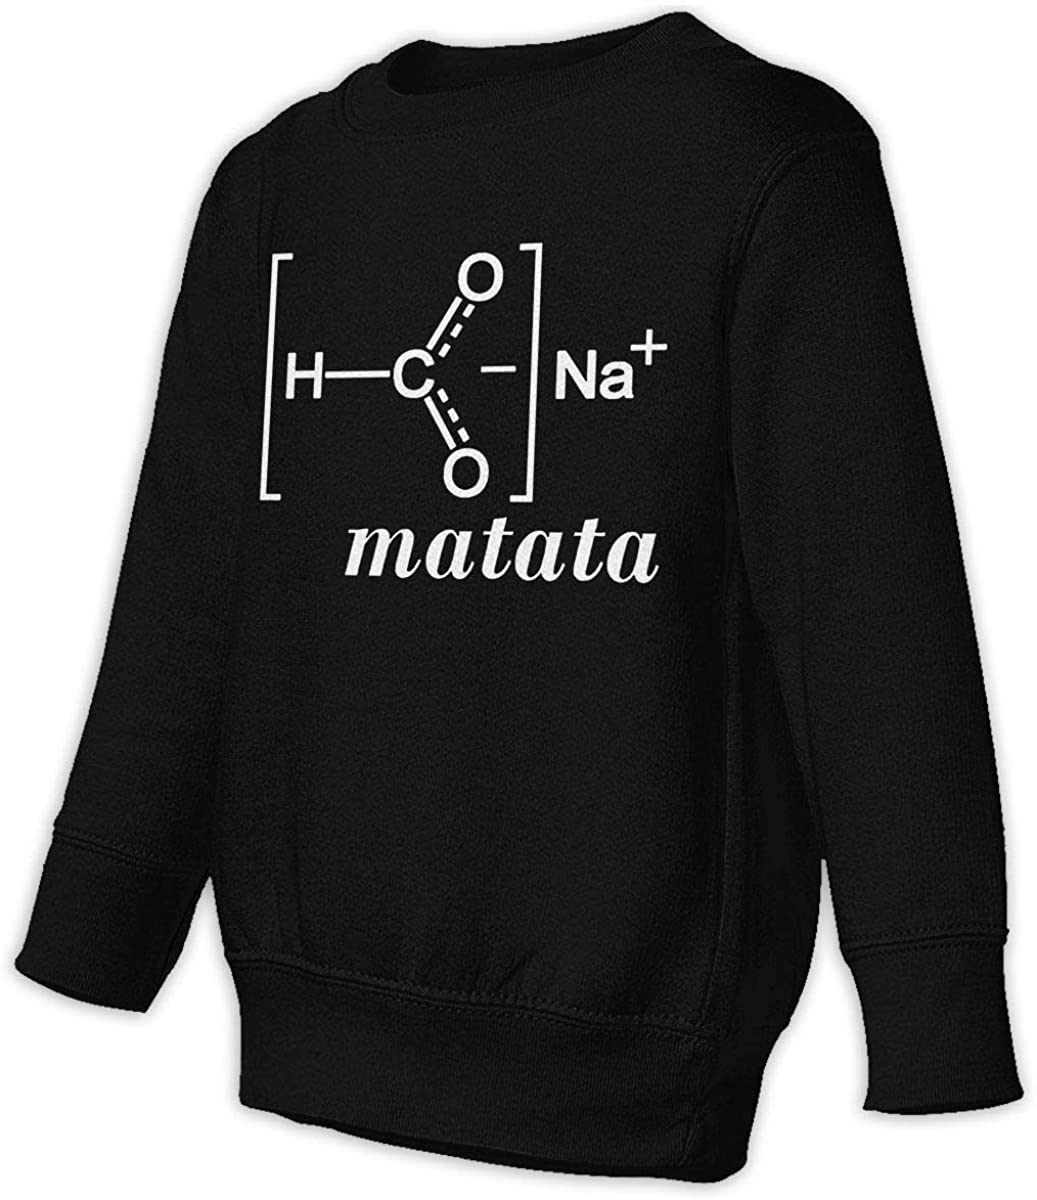 wudici Chemistry Formular Boys Girls Pullover Sweaters Crewneck Sweatshirts Clothes for 2-6 Years Old Children